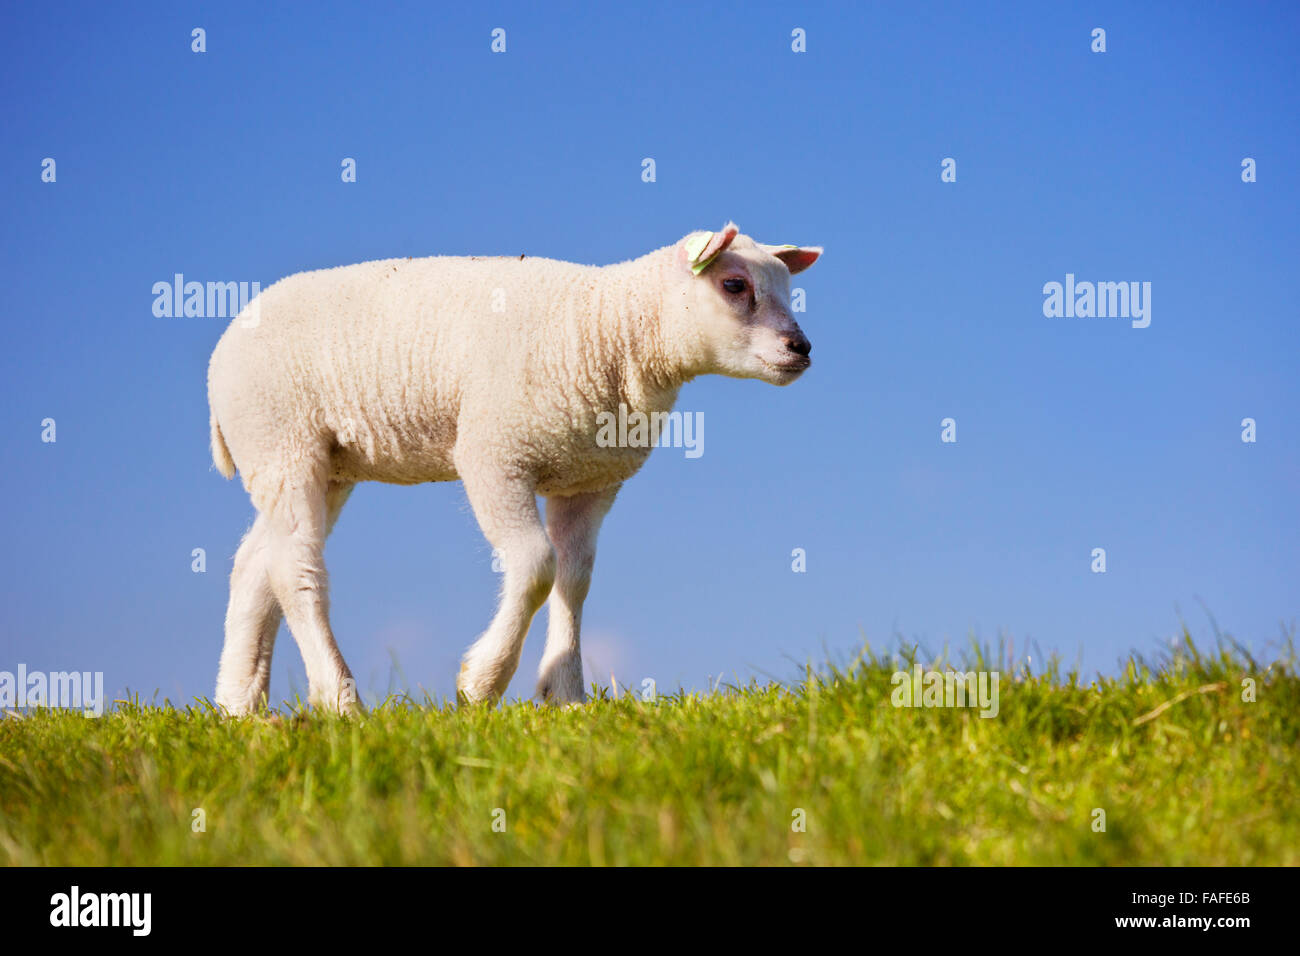 A cute little Texel lamb in the grass on the island of Texel in The Netherlands on a sunny day. Stock Photo